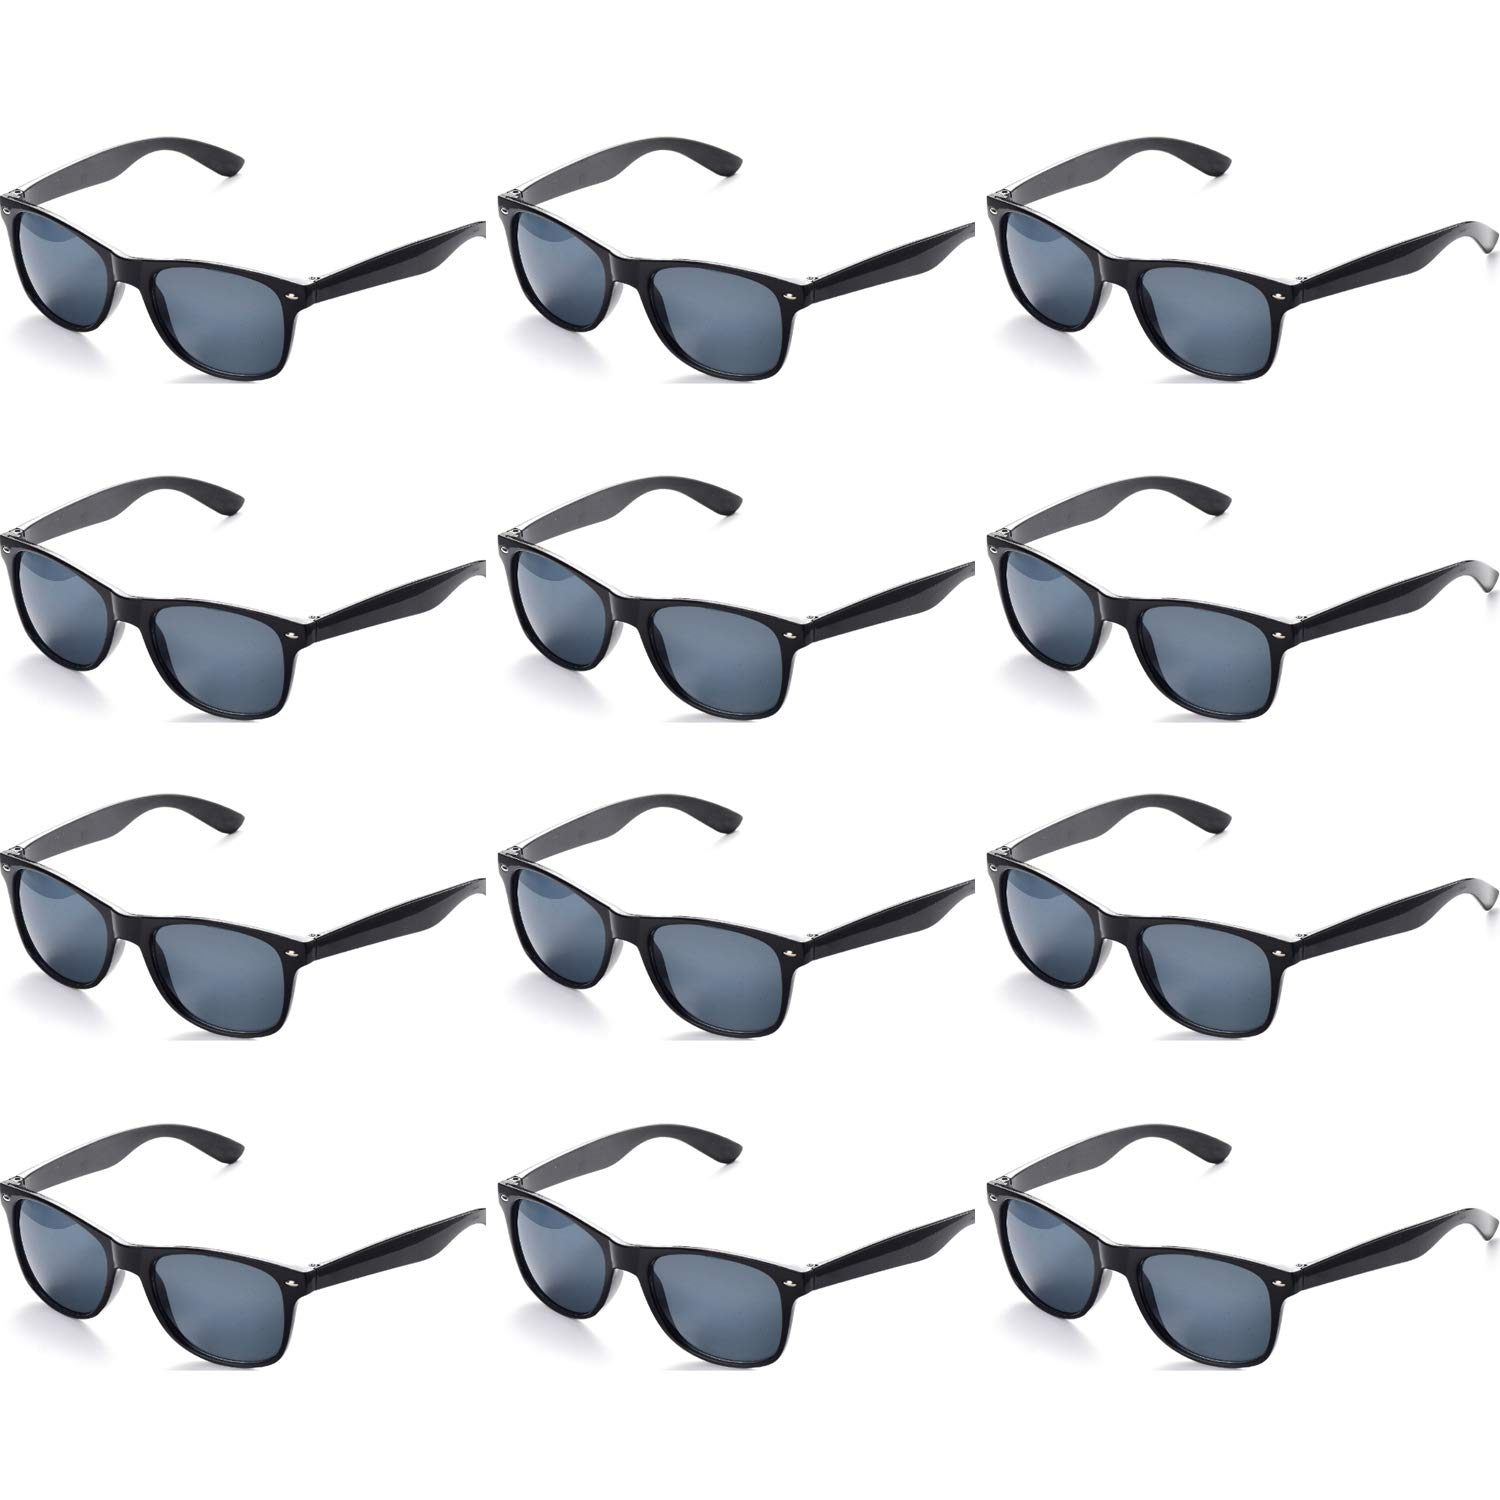 OAONNEA 12 PACK Retro Vintage Party Sunglasses for Adults Mens Womens Kids Girls Boys UV400 Protection black